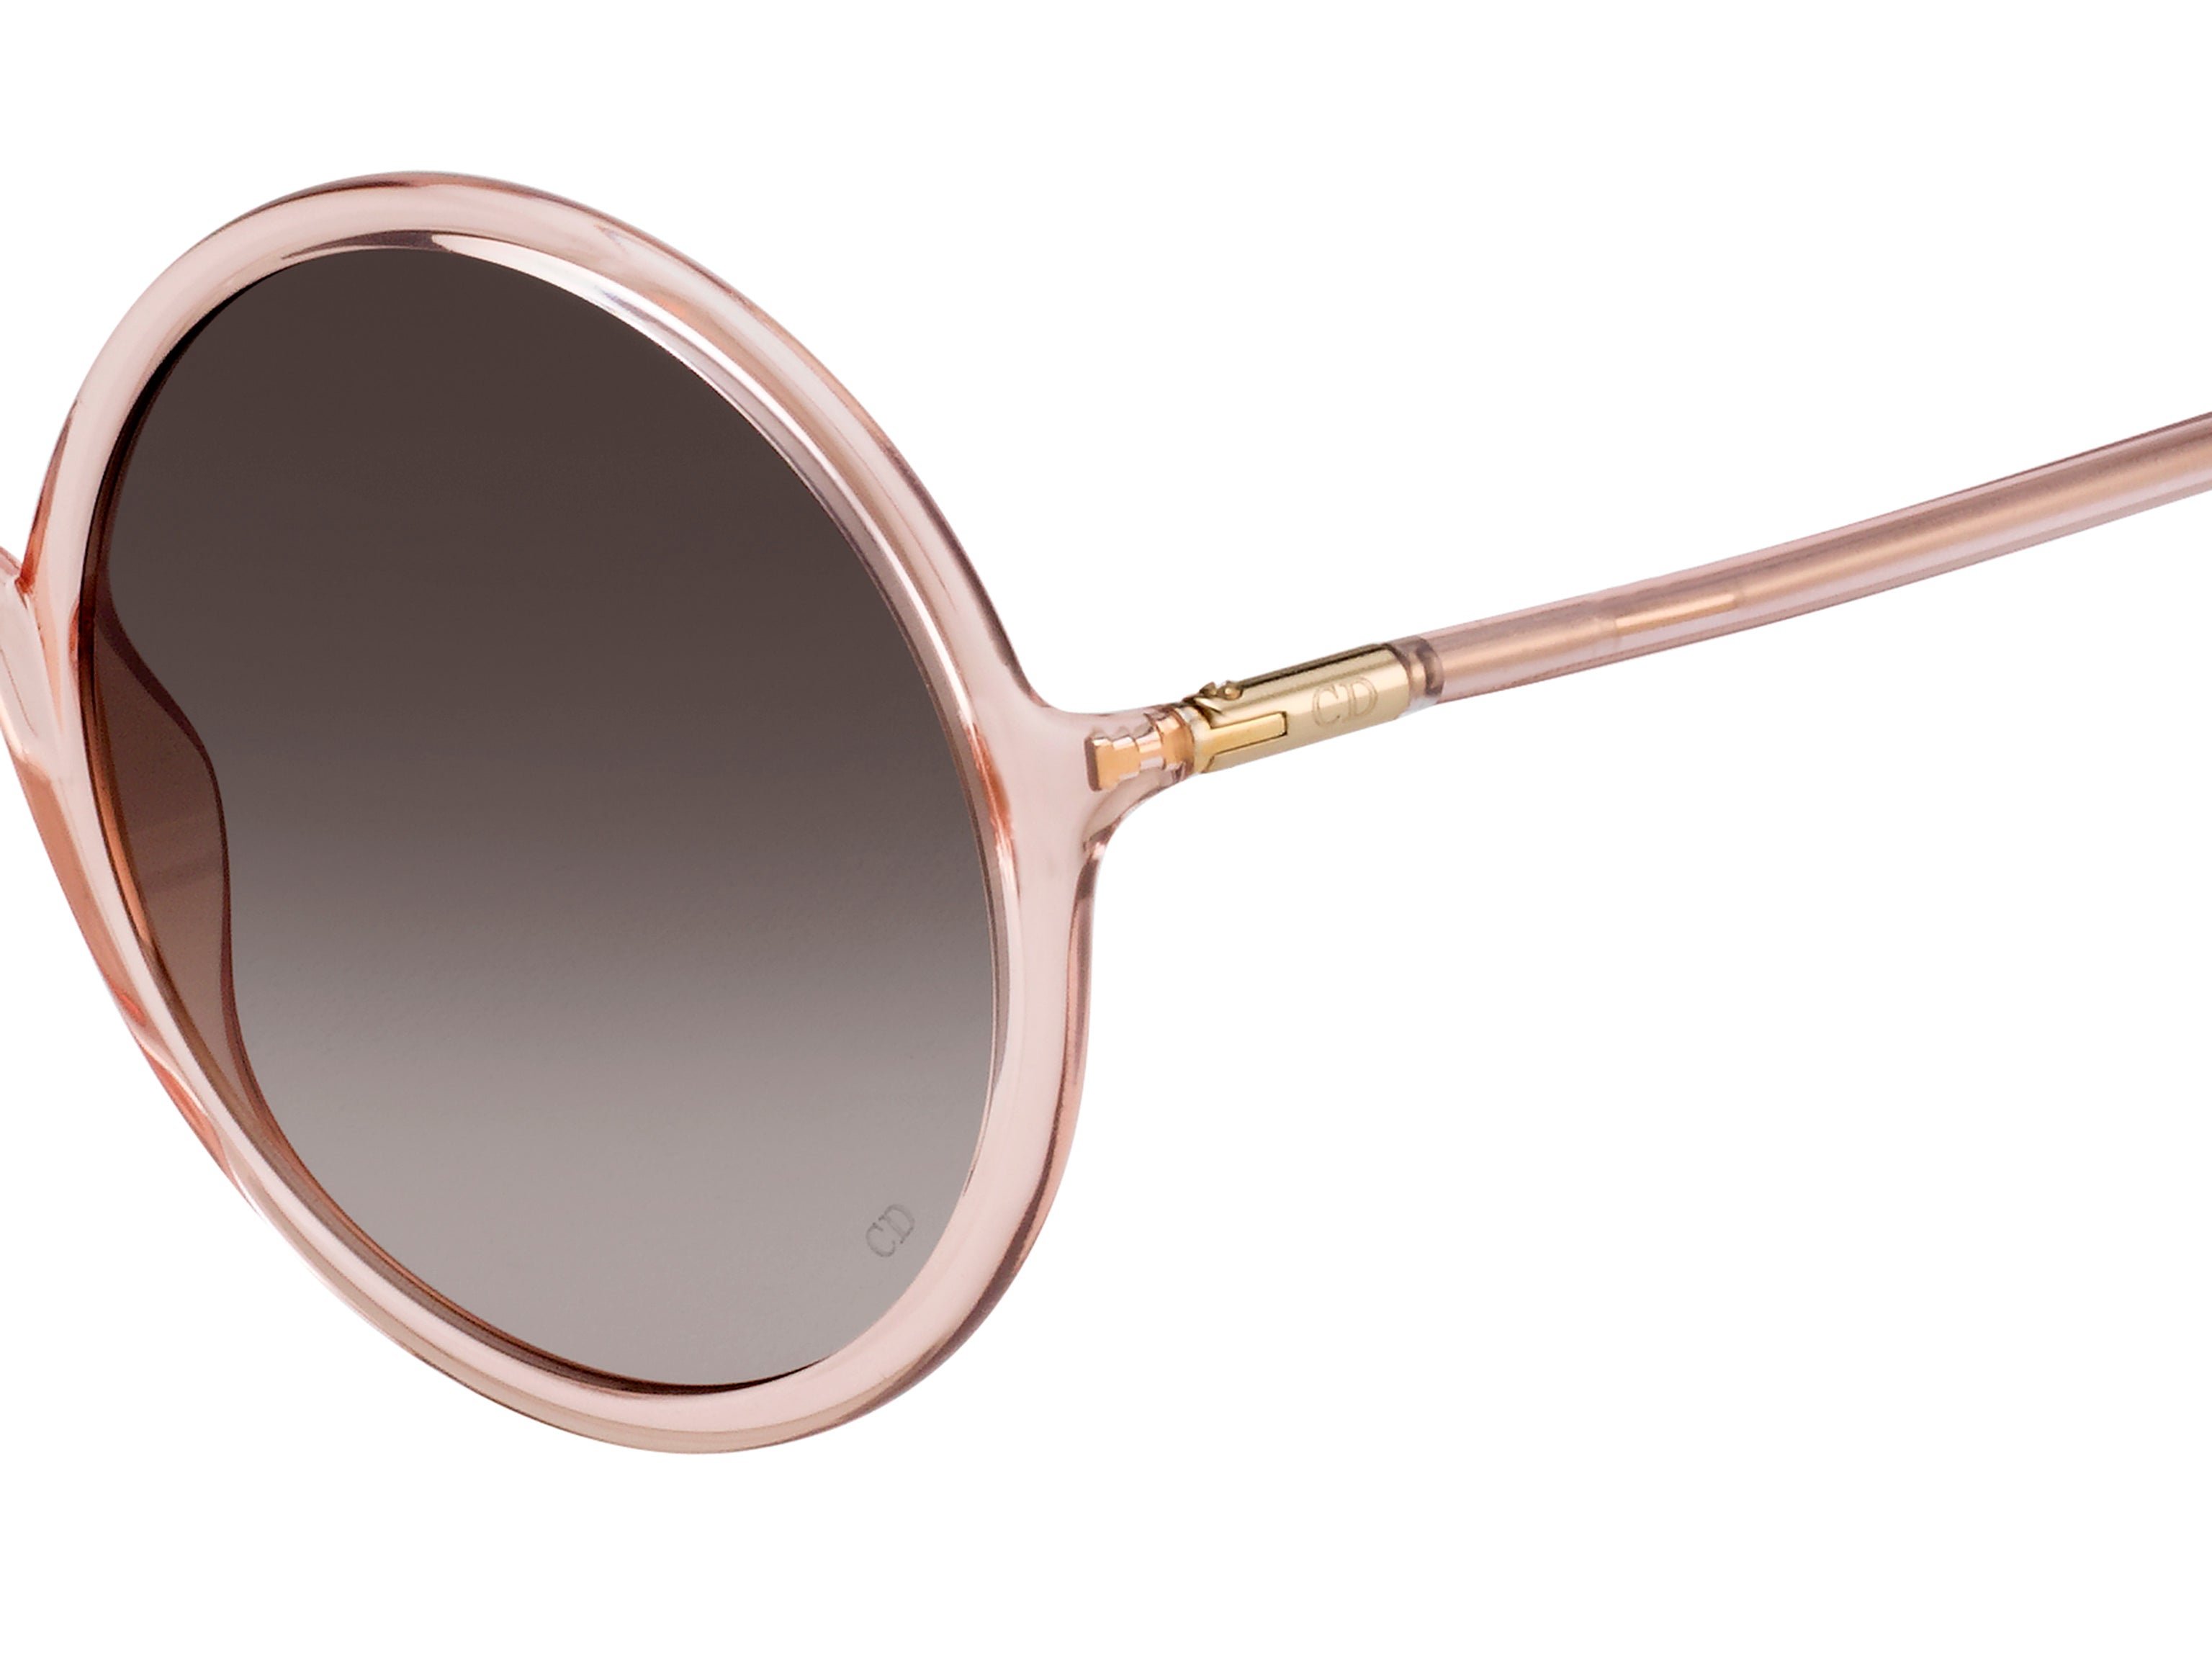 Christian Dior SoStellaire3 35J86